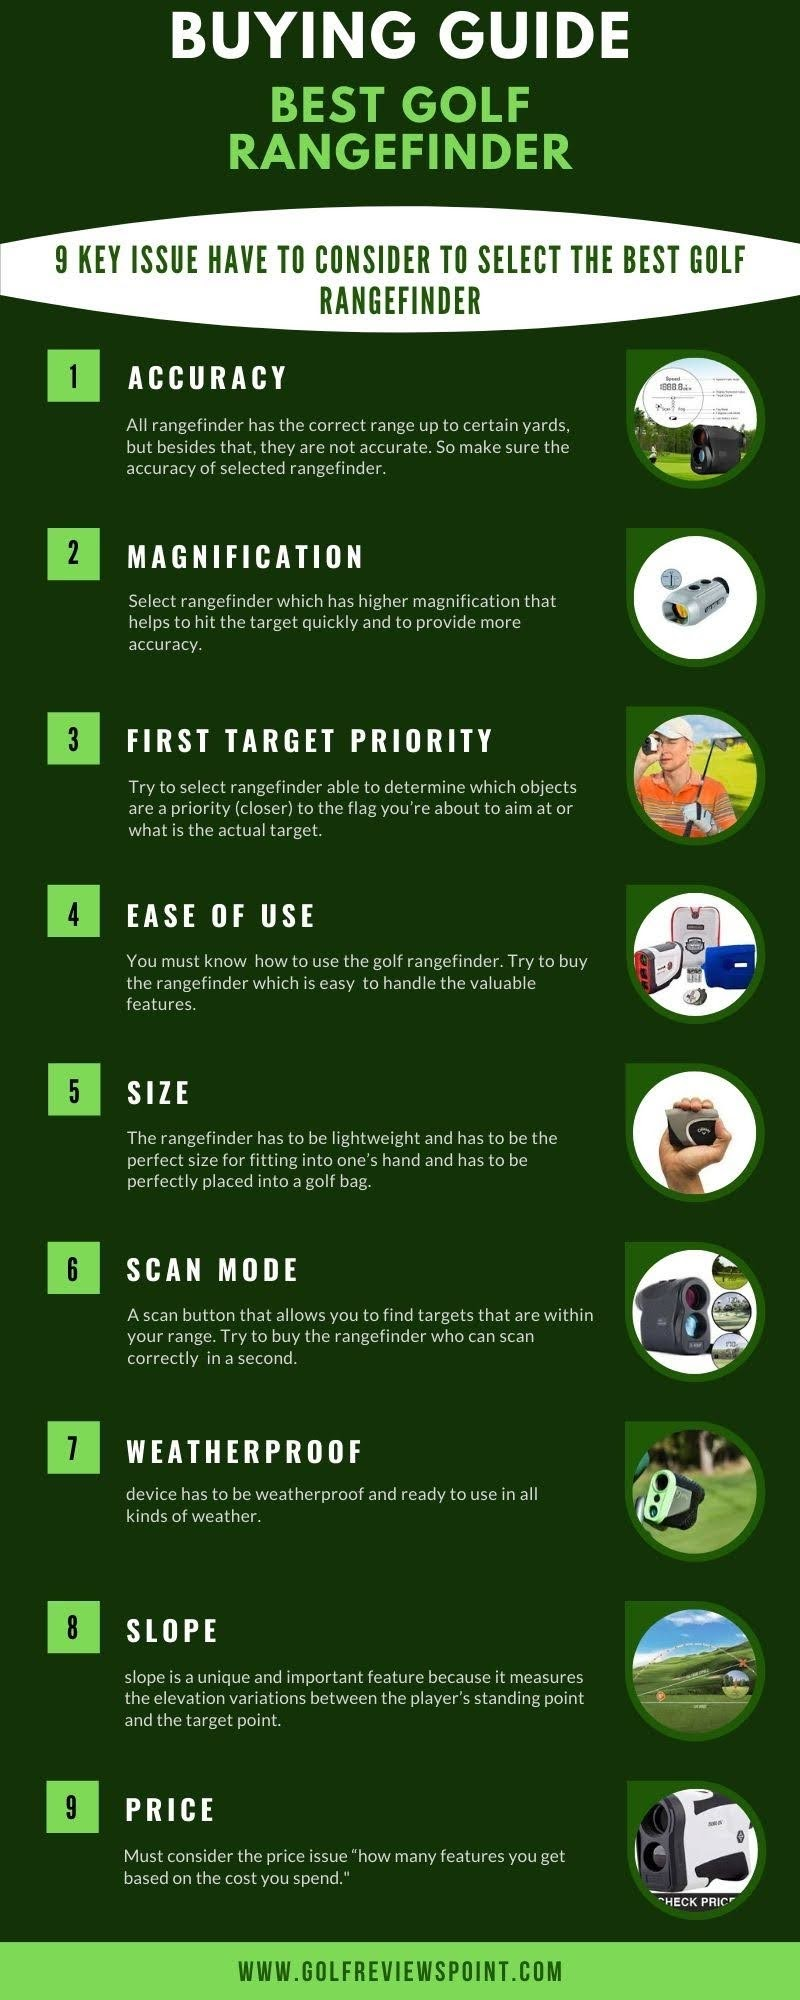 Best Golf Rangefinder with slope – 2020 #infographic